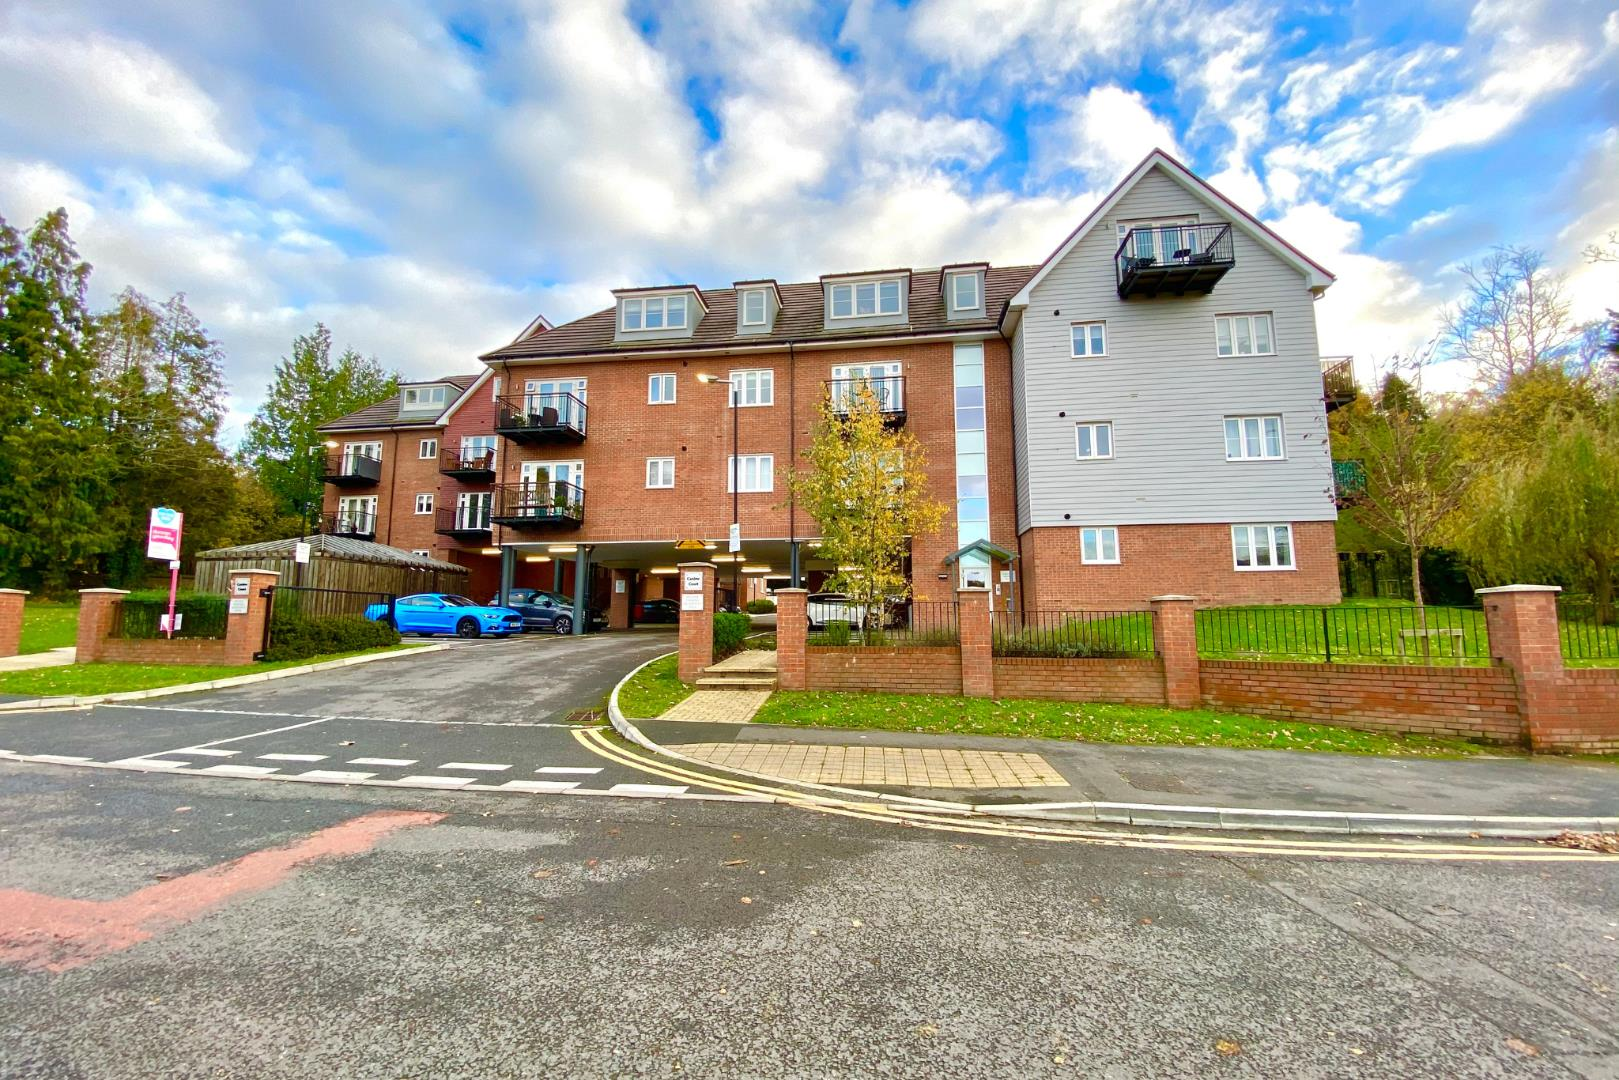 2 bed flat for sale, RG12